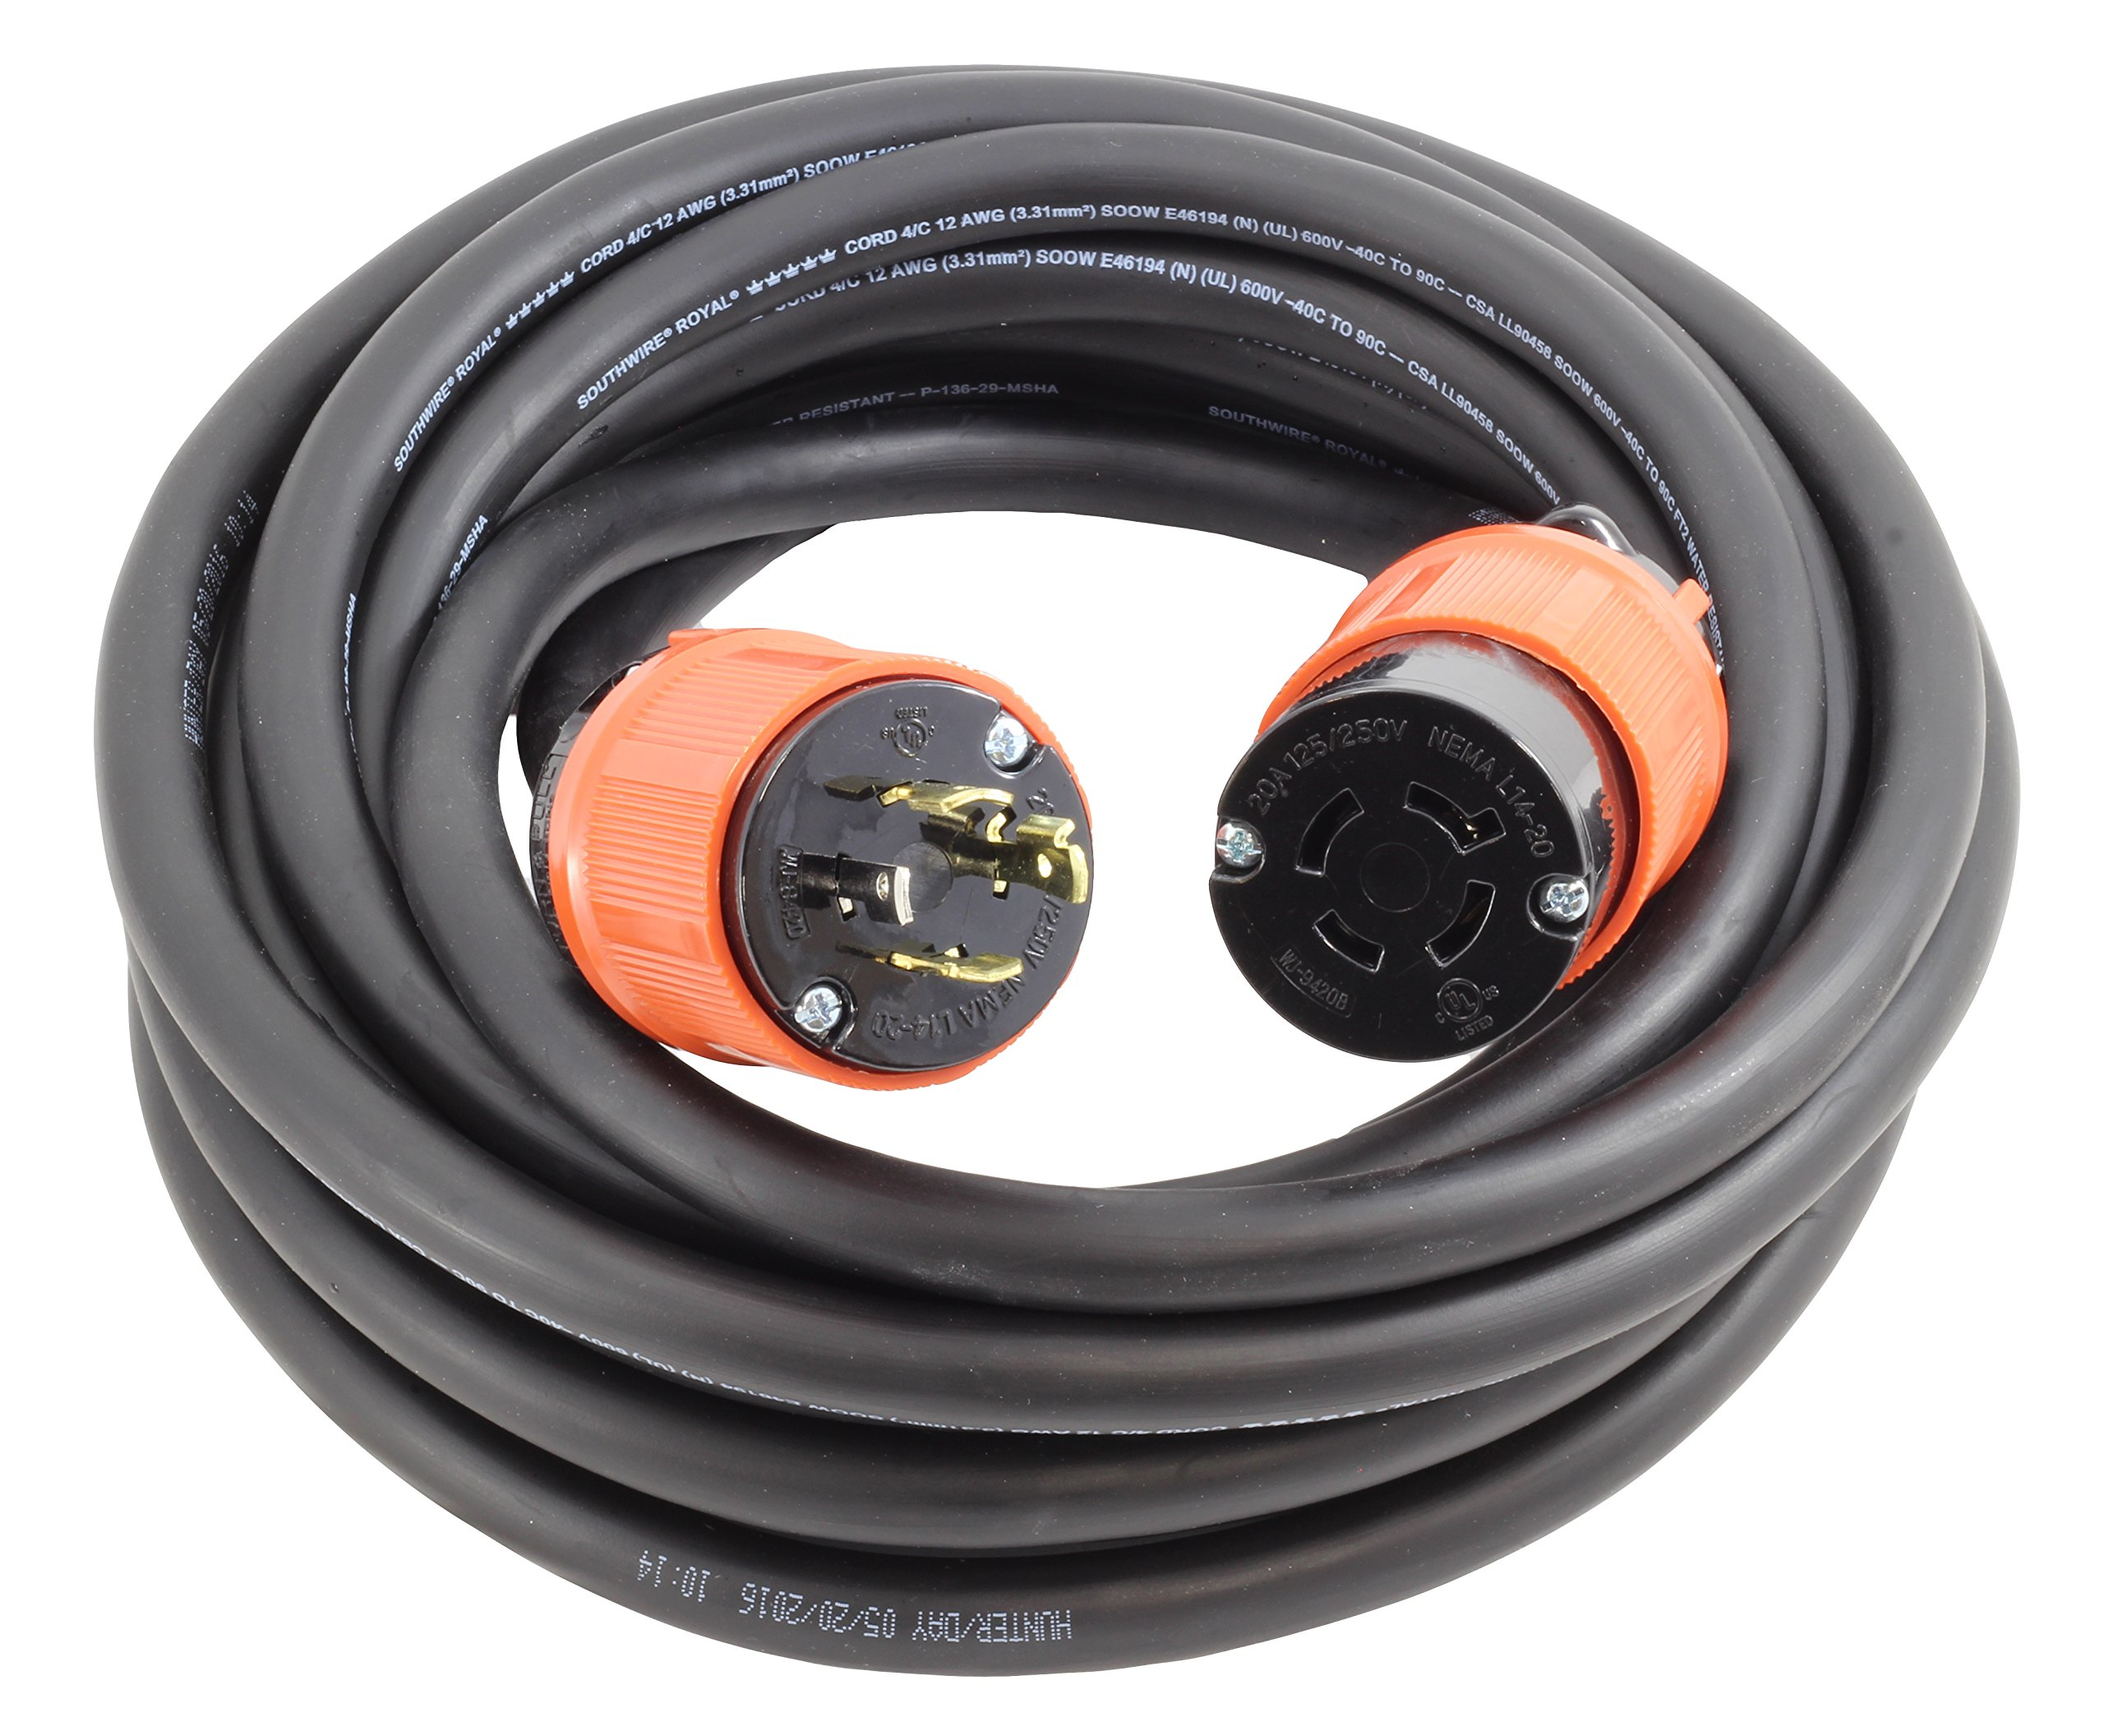 AC WORKS NEMA L14-20 Rubber SOOW 12/4 Extension Cord (25FT)